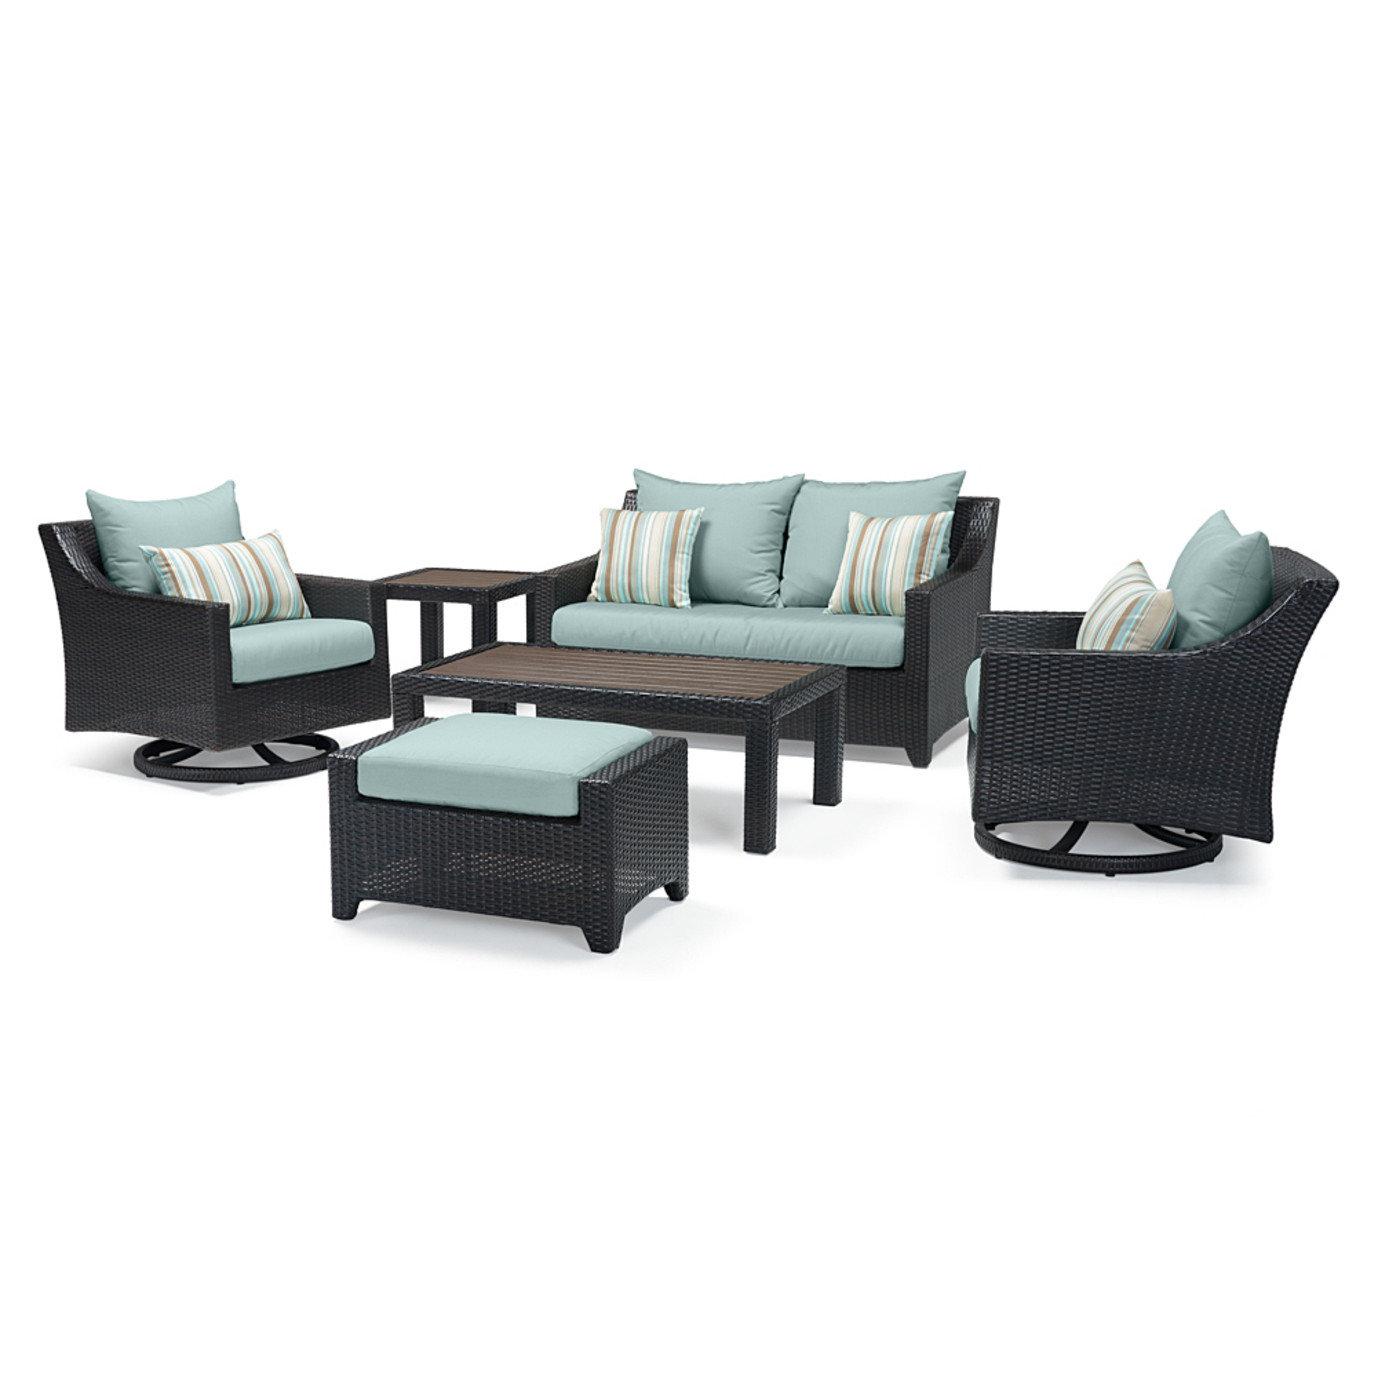 Deco Deluxe 6pc Love & Motion Club Seating Set - Bliss Blue